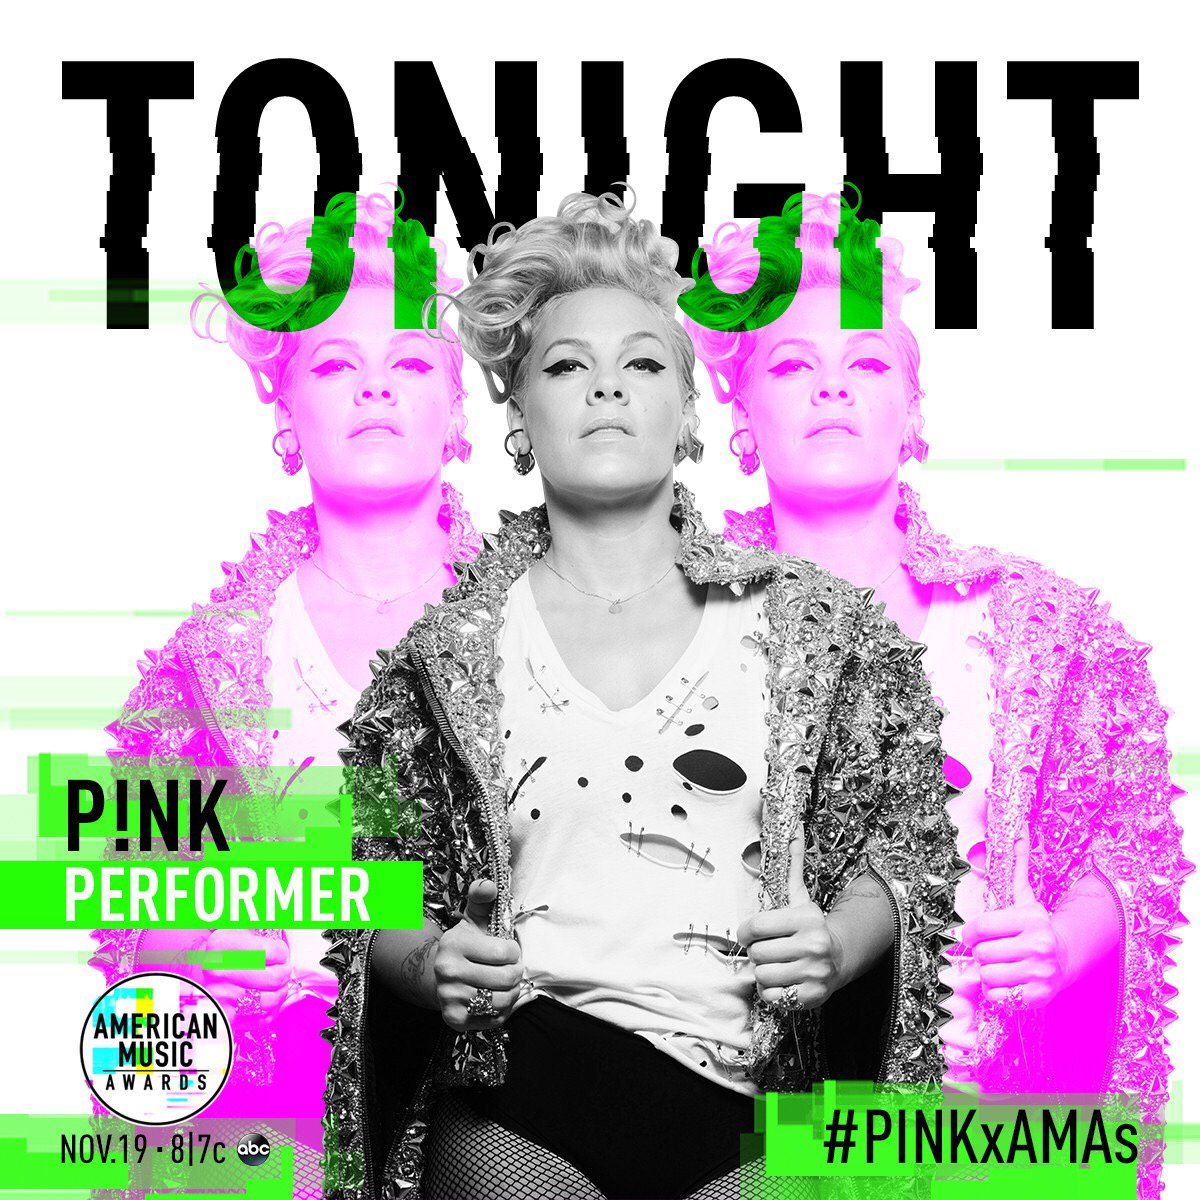 Are you ready? Who are you most excited to see tonight?   @AMAs #AMAs   @Pink  @BTS_twt  @ddlovato  @NiallOfficial https://t.co/eMiNlcVtwO